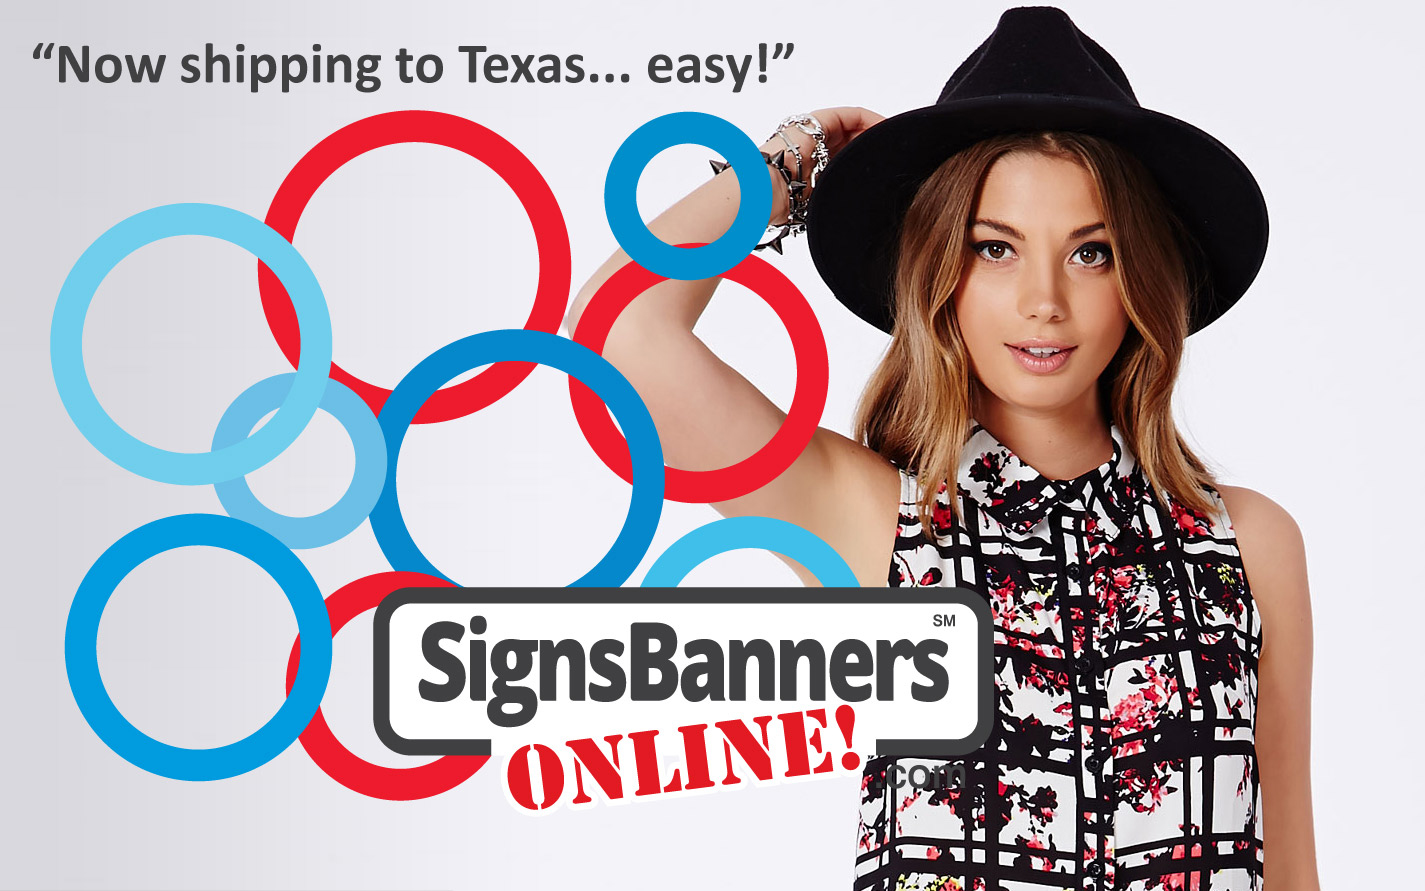 Houston Texas Signs Banners Online now ship out to all TX for printed banner signage